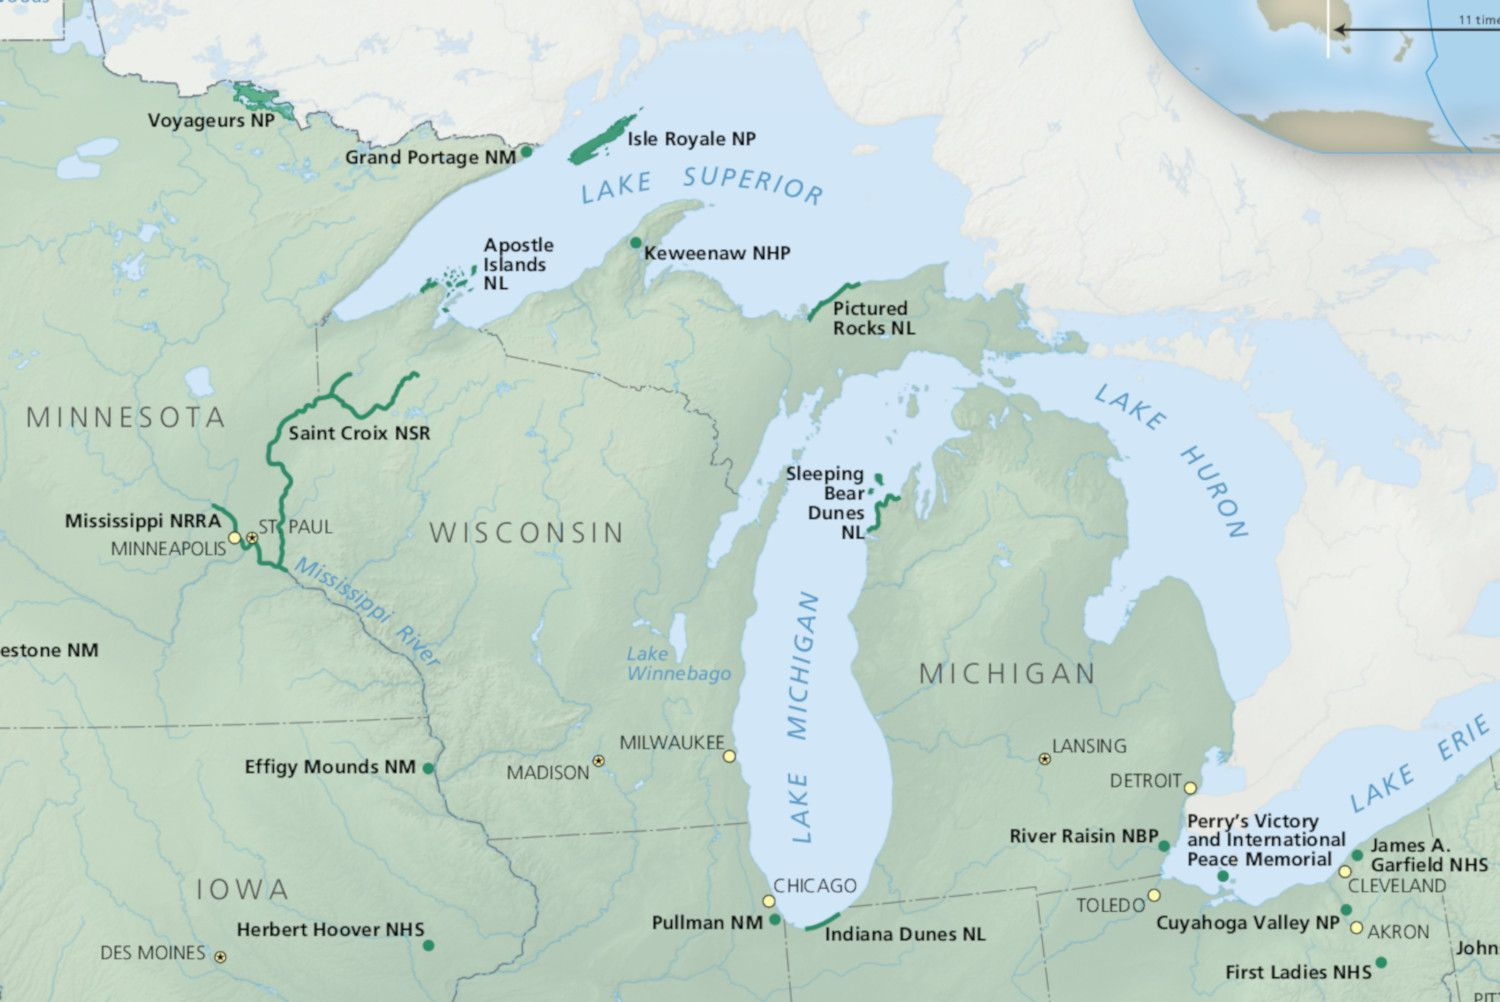 National Parks in Michigan